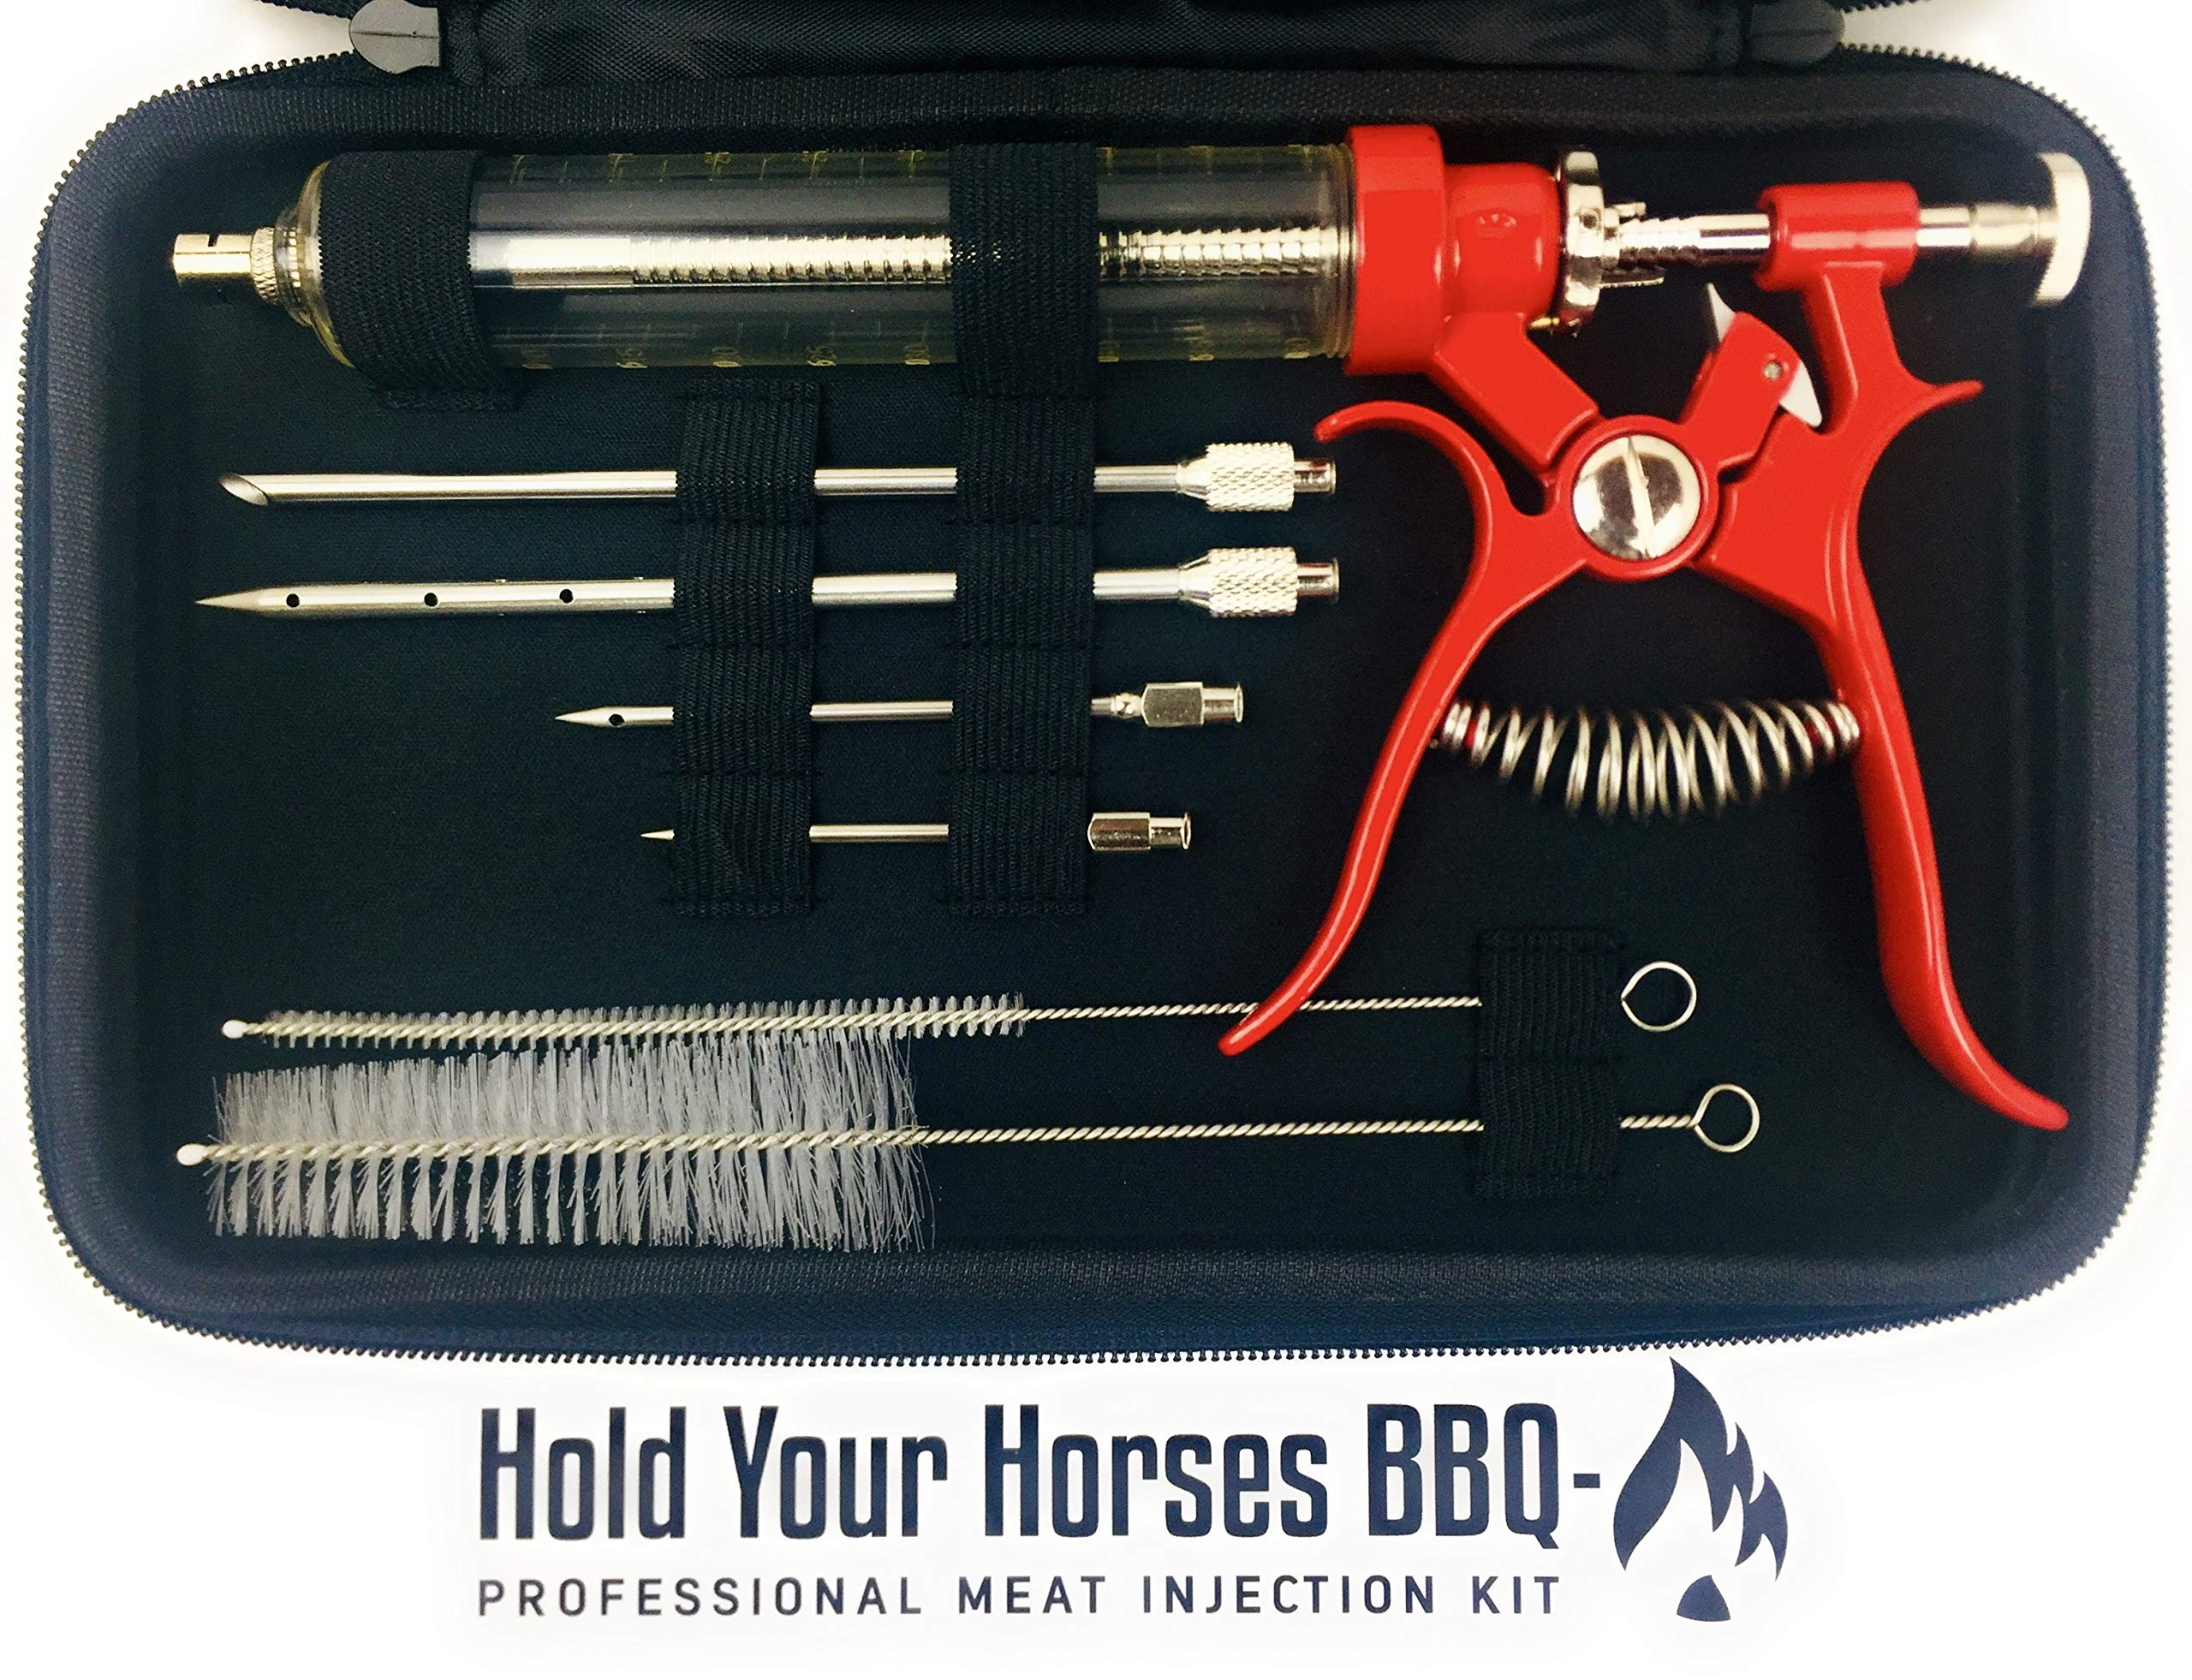 Professional Automatic BBQ Meat Marinade Injector Gun Kit with CASE, CLEANING BRUSHES, 2 oz Large Capacity Barrel and 4 Commercial Grade Marinade Needles | Hold Your Horses BBQ (red)